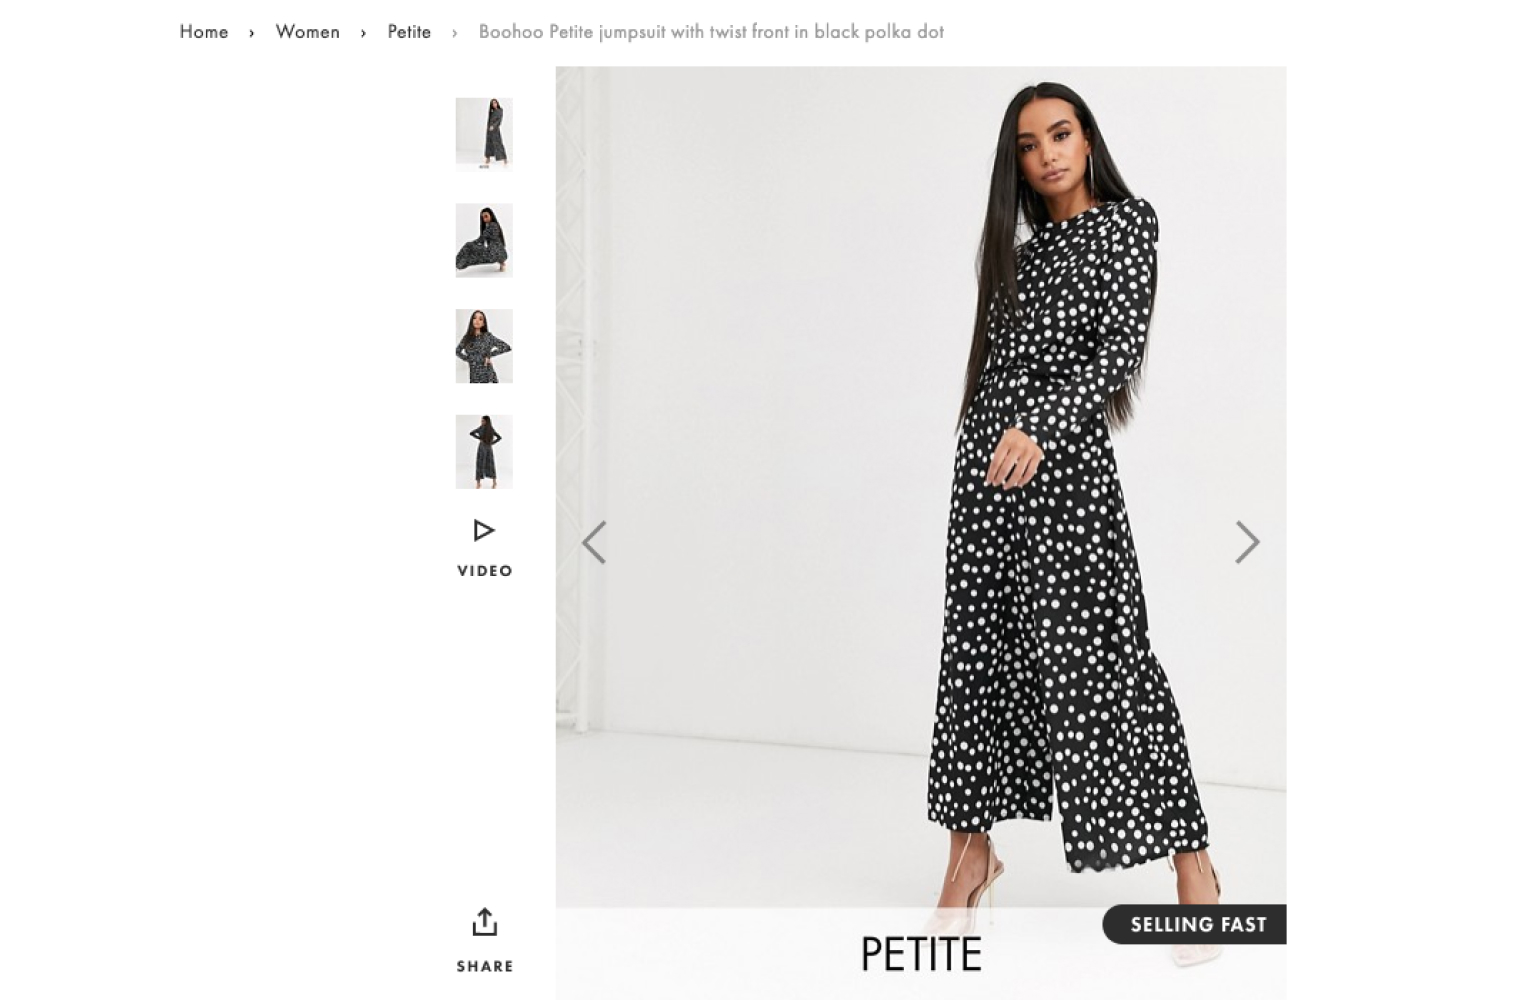 Result of style match feature in eCommerce